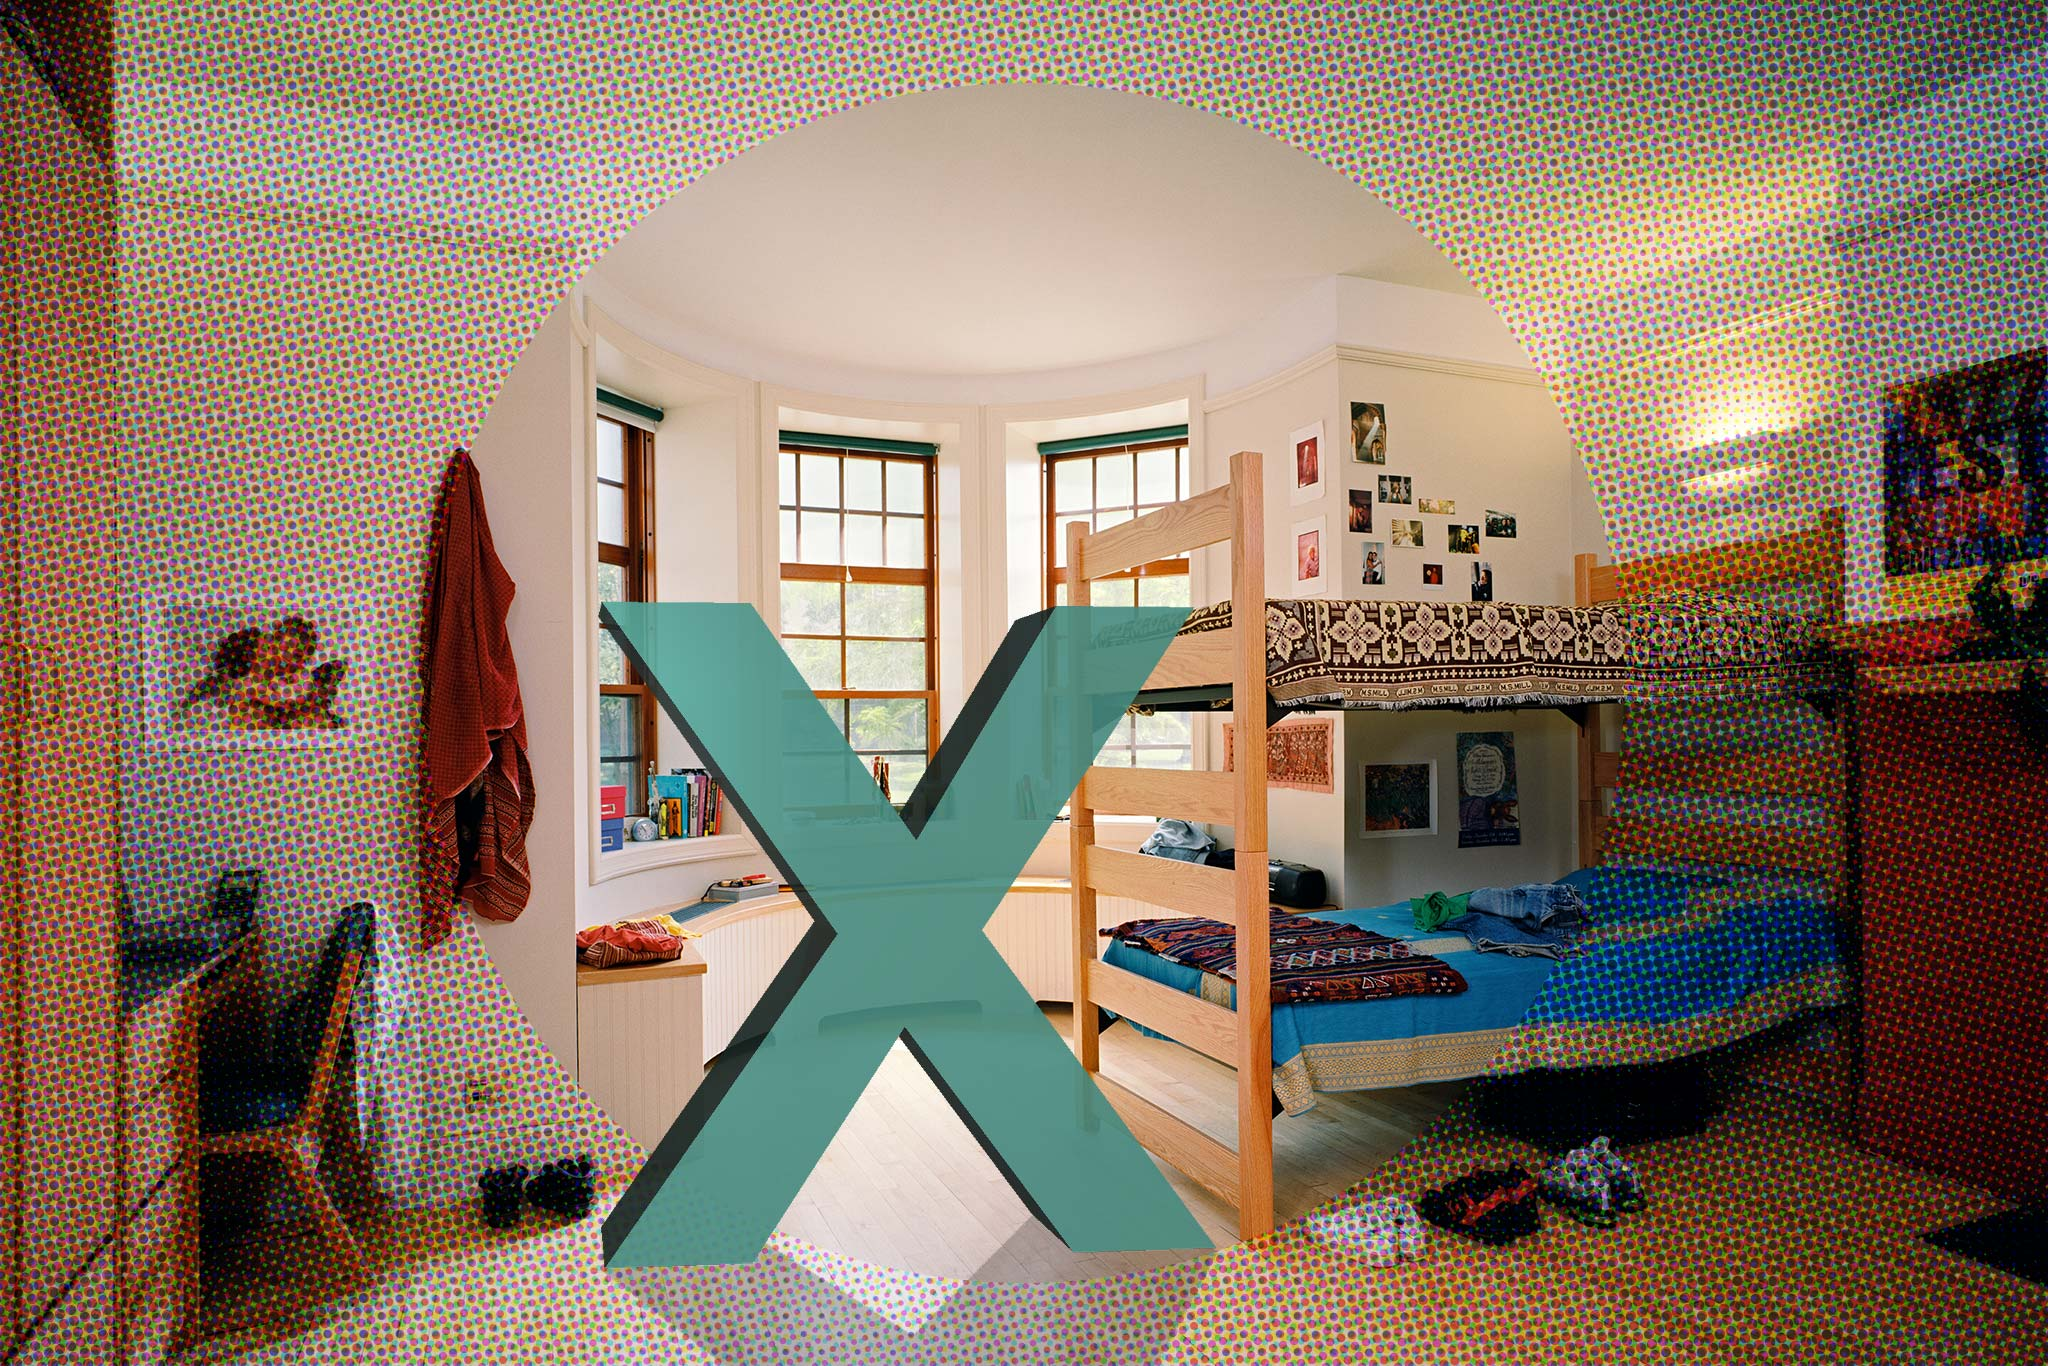 Image of empty dorm room with a large 'X' on top